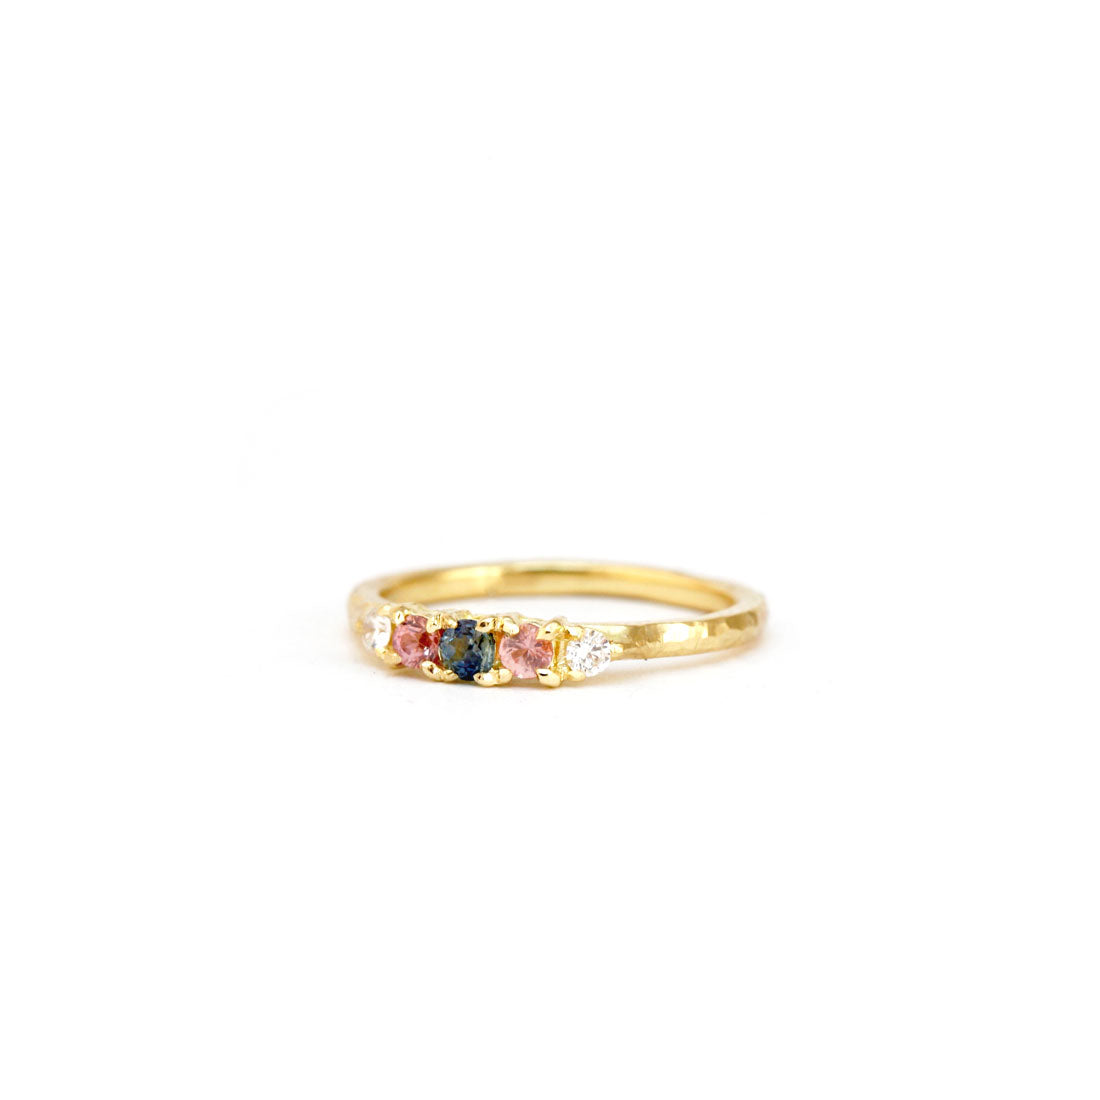 Pink and Blue Sapphire and white diamond engagement wedding ring in 18ct yellow gold, custom bespoke handmade.